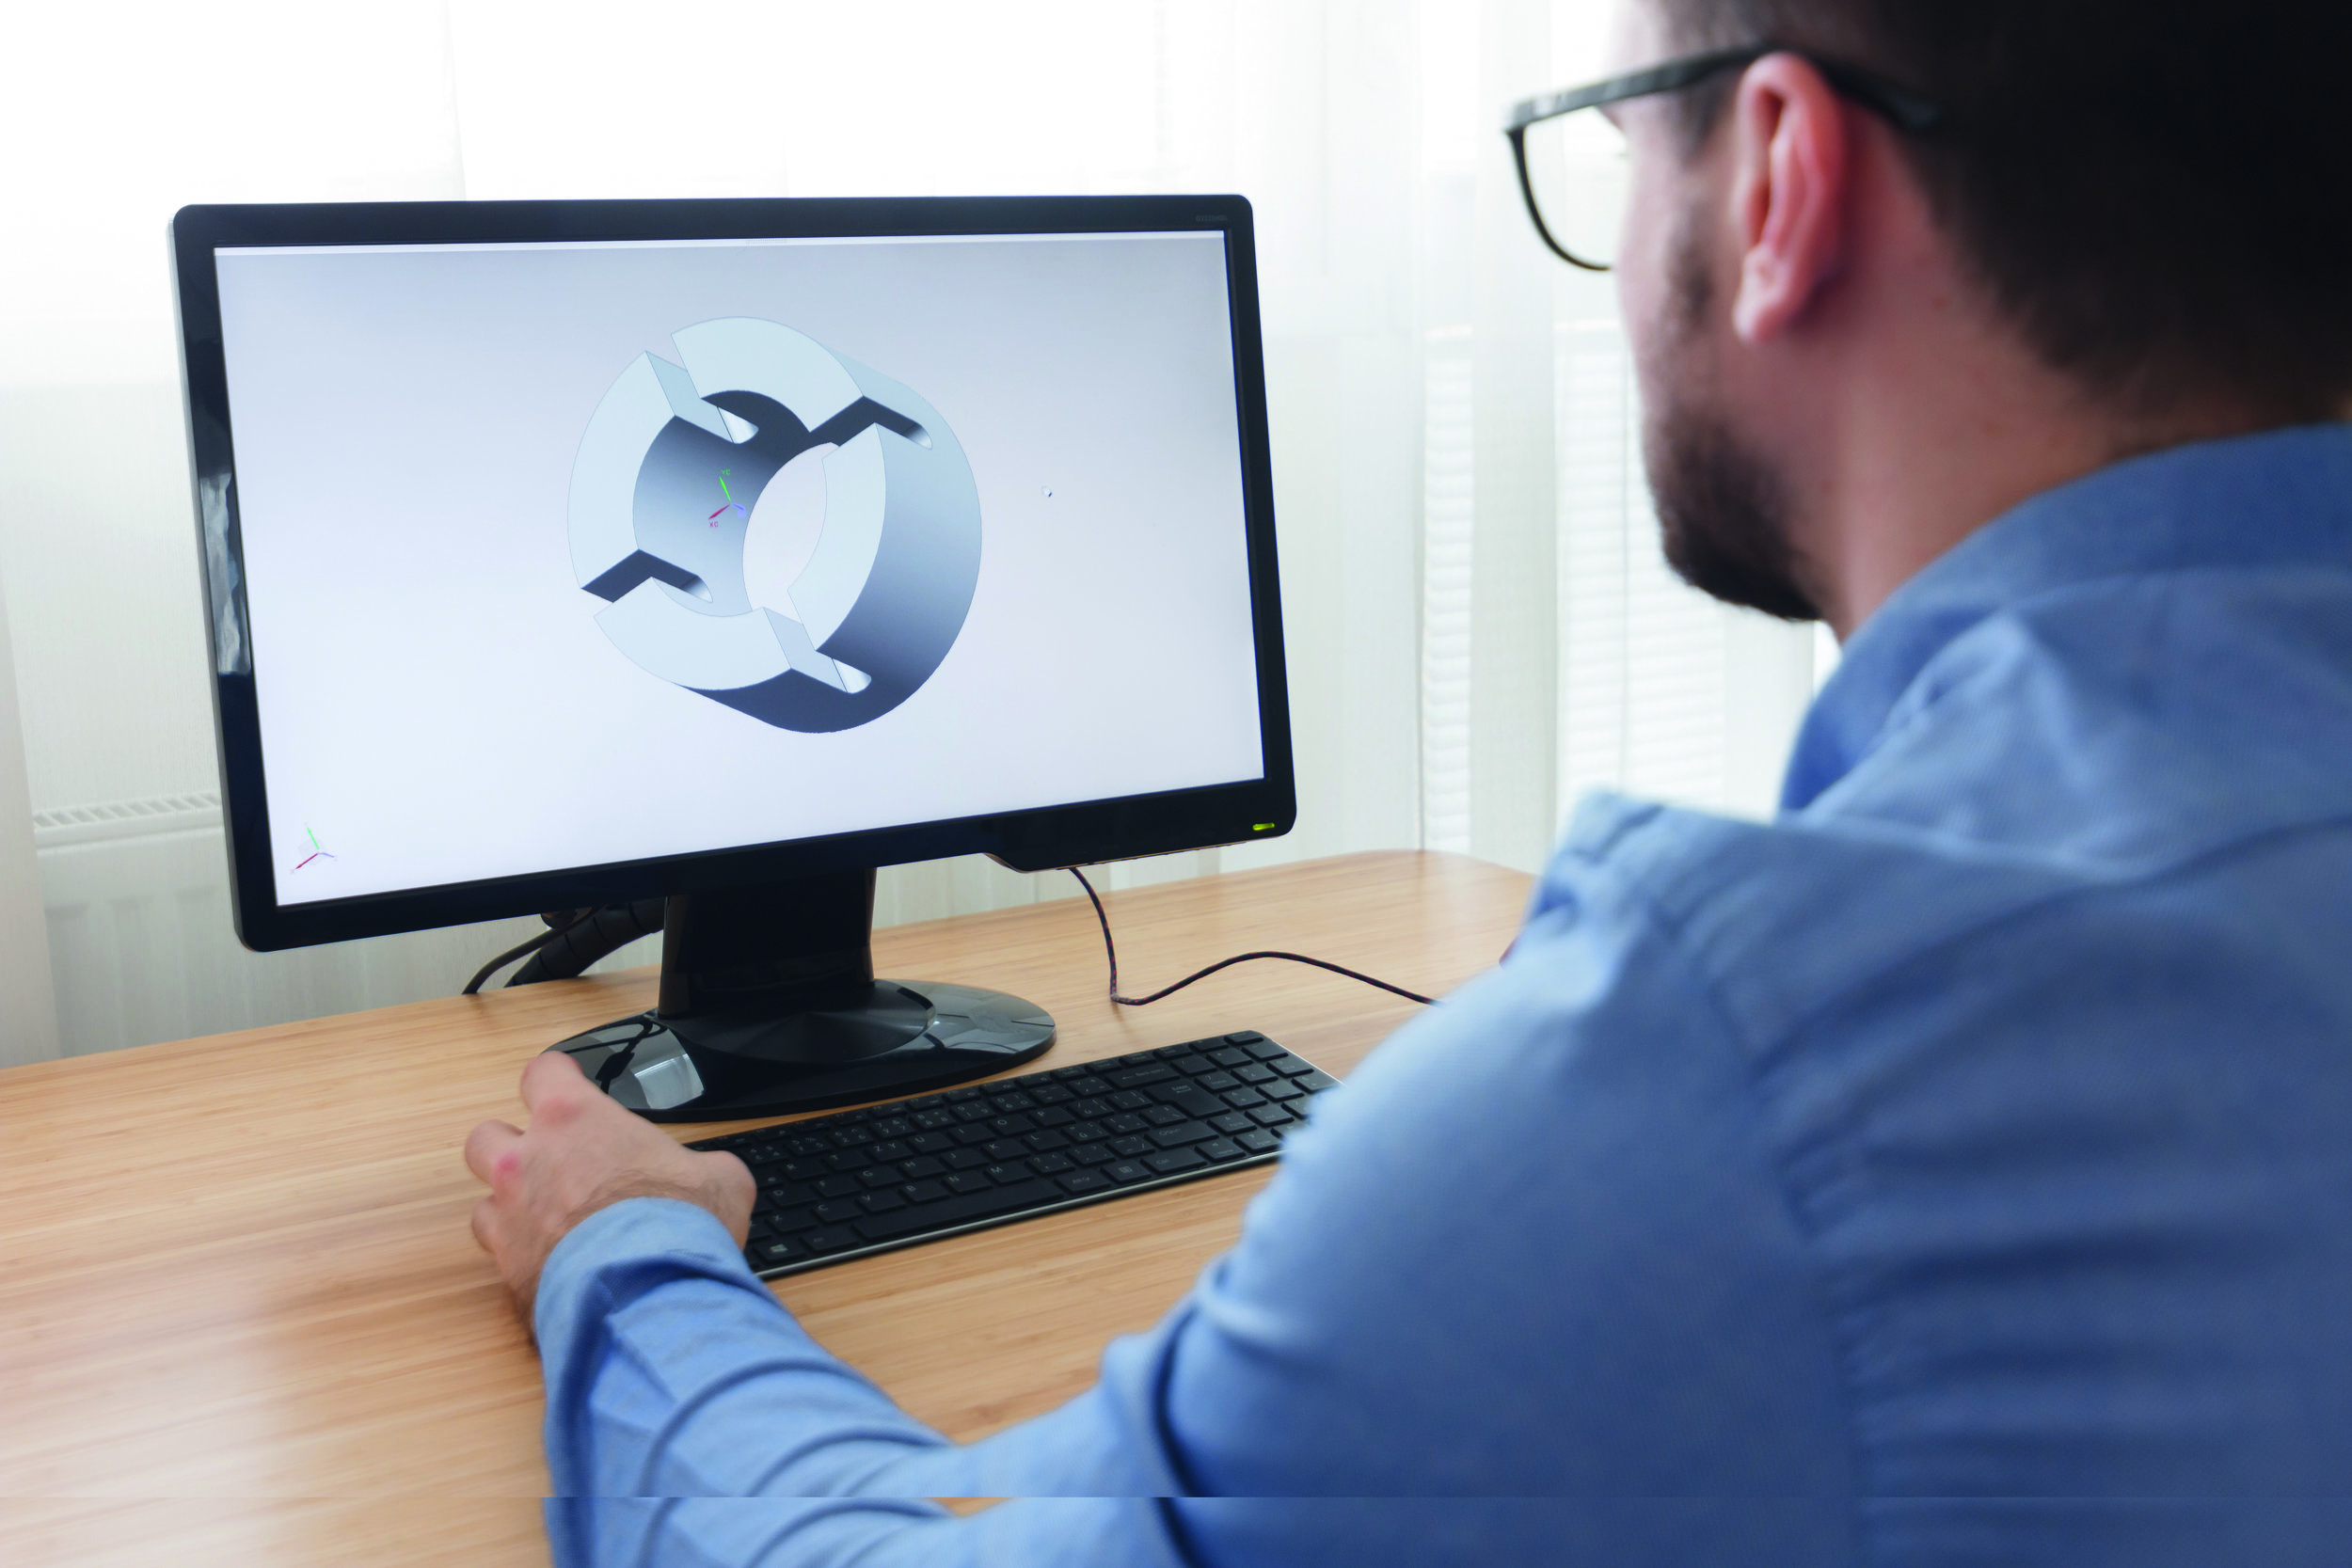 Meet 3D CAD  Tuesday 2 July | 1.00 - 3.00pm  Learn the basics of how to digitally design anything you can think up!